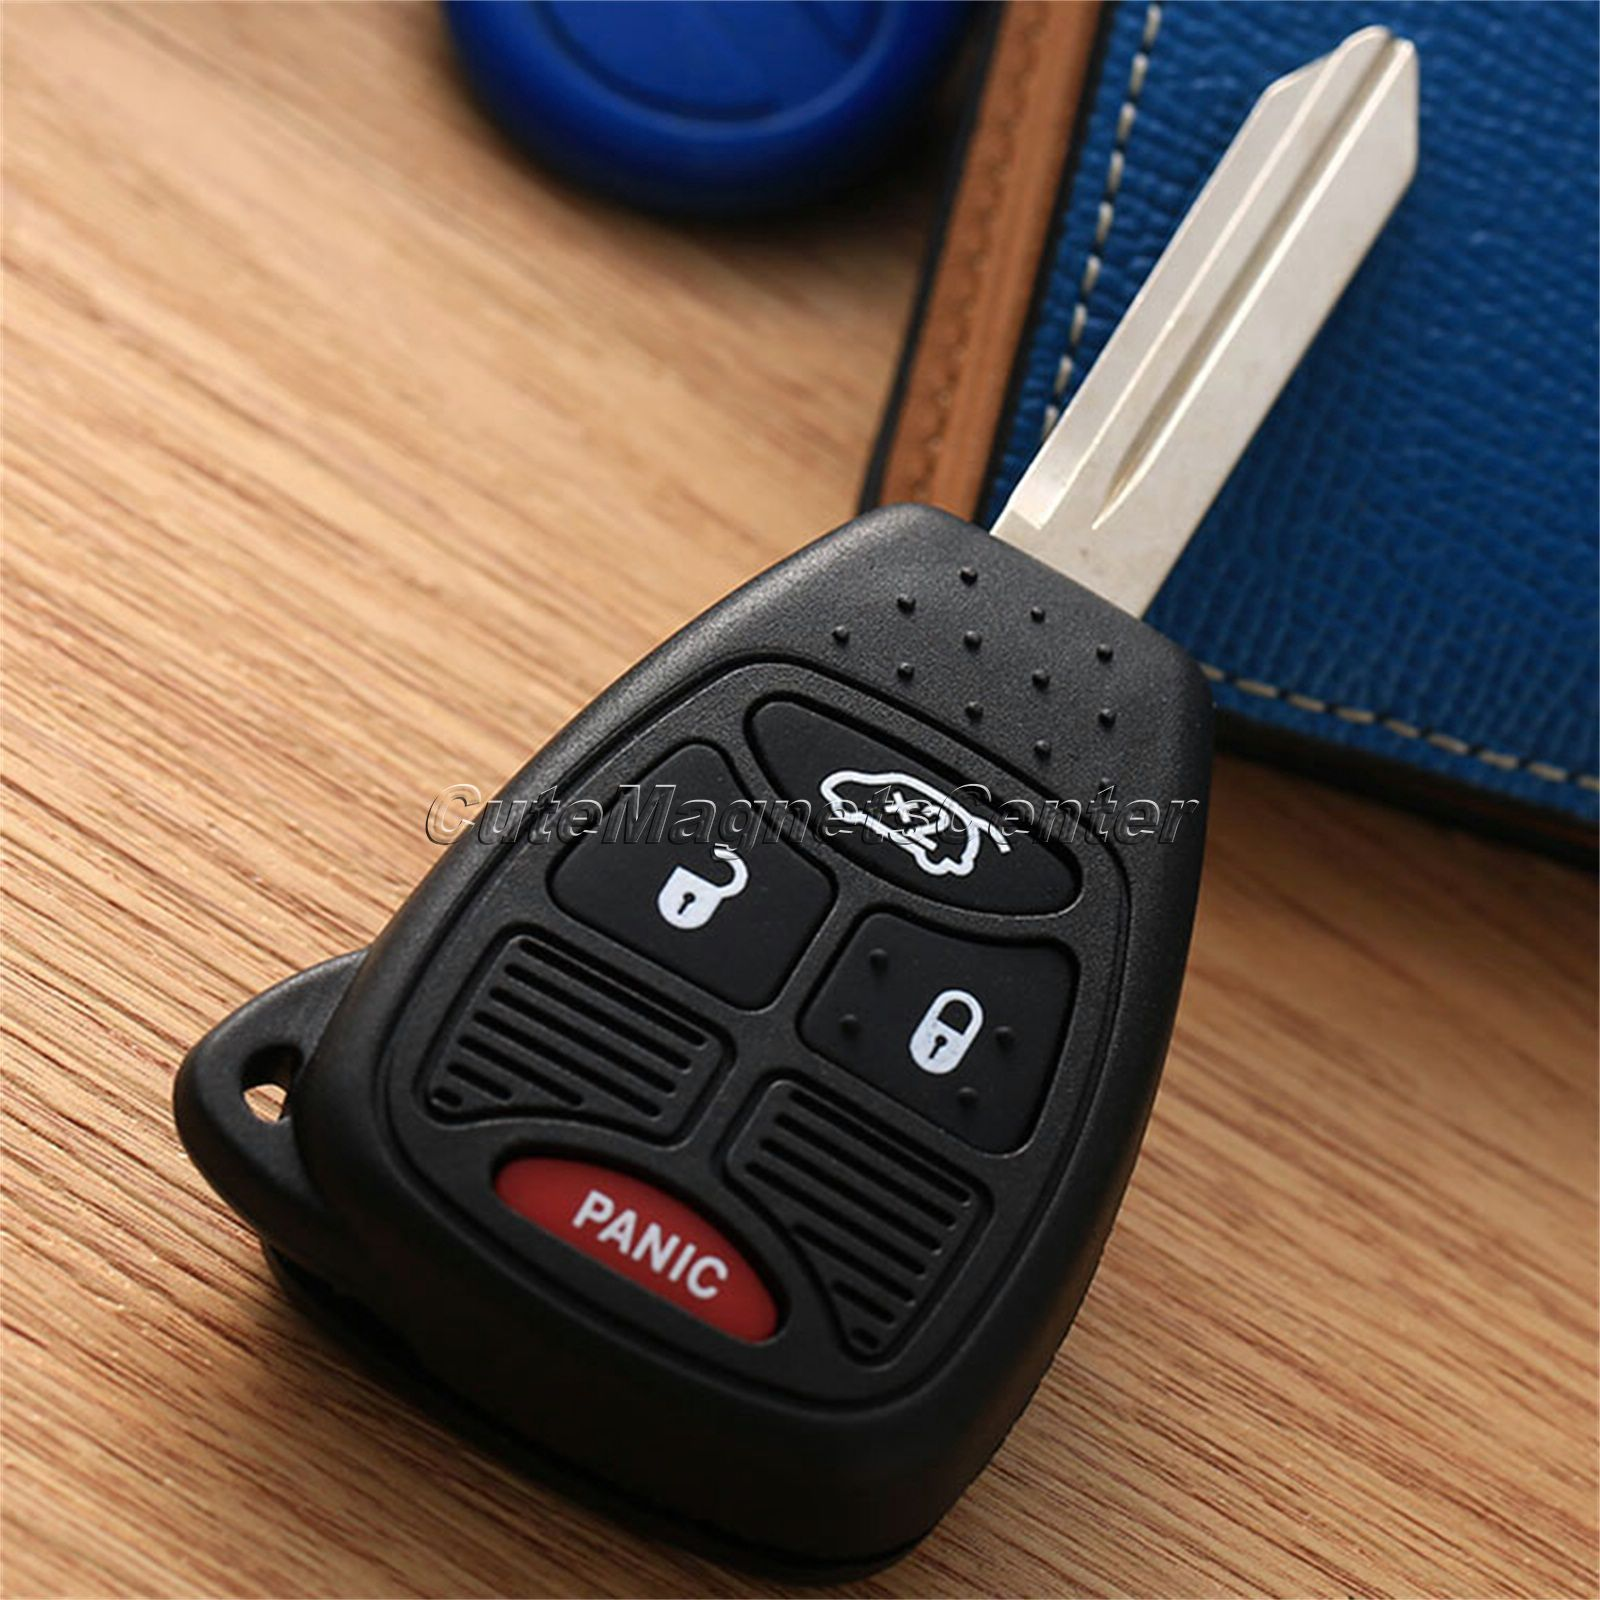 Remote Key Fob Uncut Blade Blank Keyless Car Auto key Shell Cover Remote Keyless Entry Combo Transmitter Chrysler Jep Key Fob(China (Mainland))